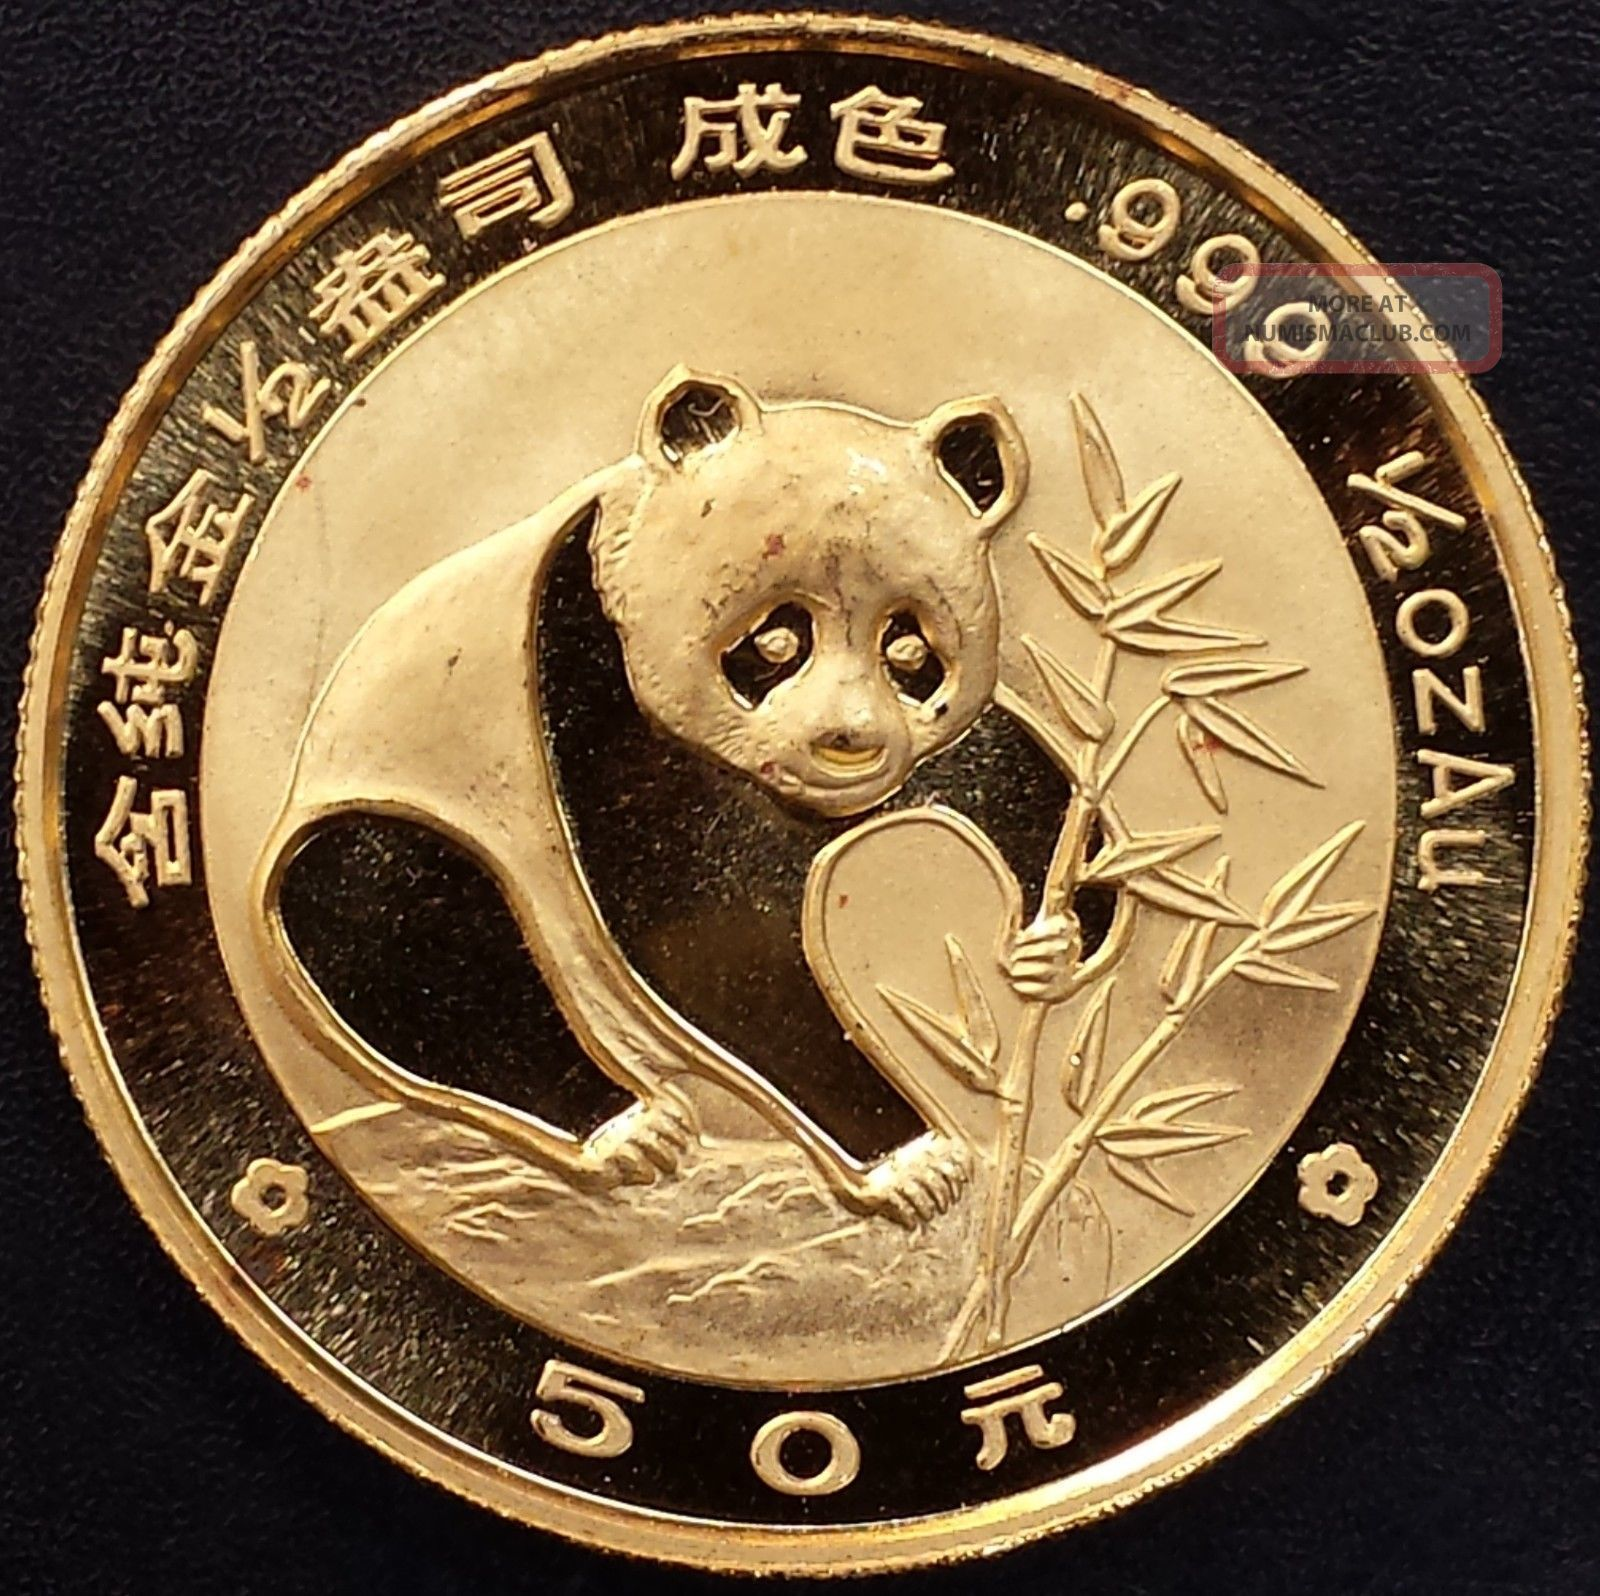 1988 Fifty Yuan Gold Panda Coin From China 1 2 Troy Ounce 999 Fine Gold